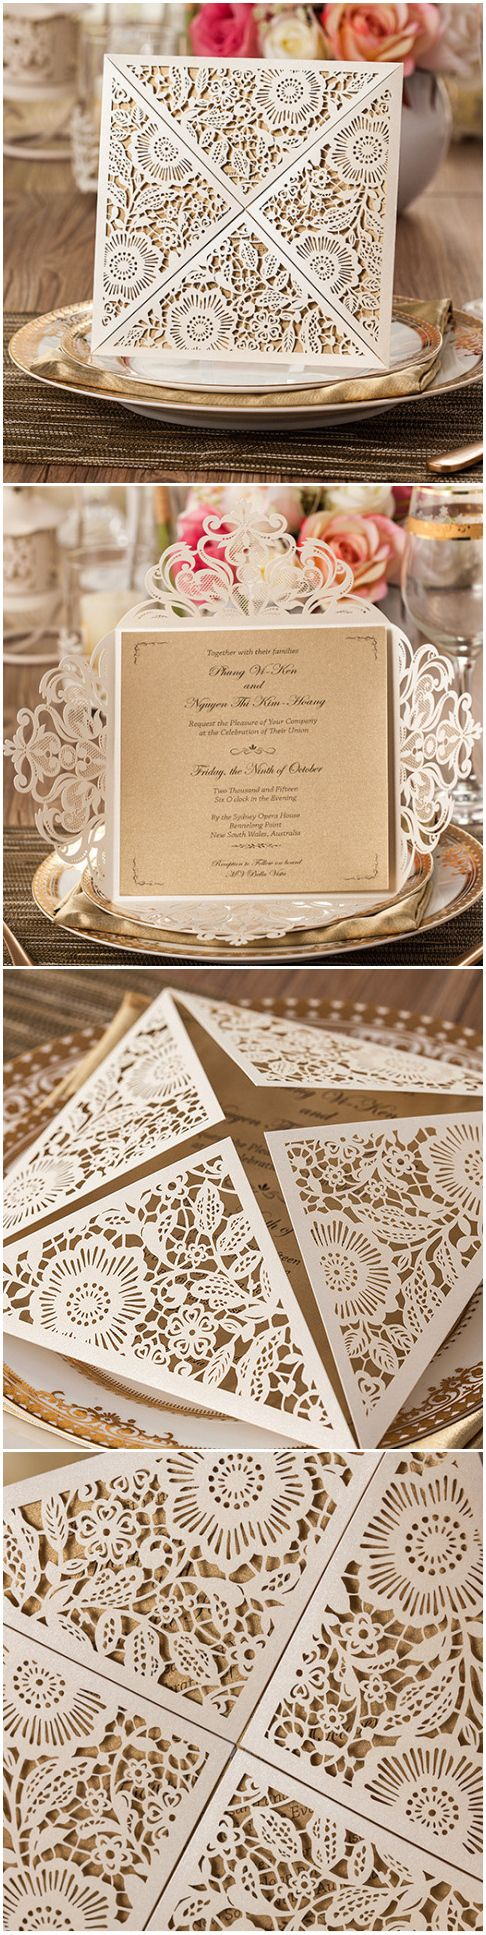 delicate metallic laser cut wedding invitations